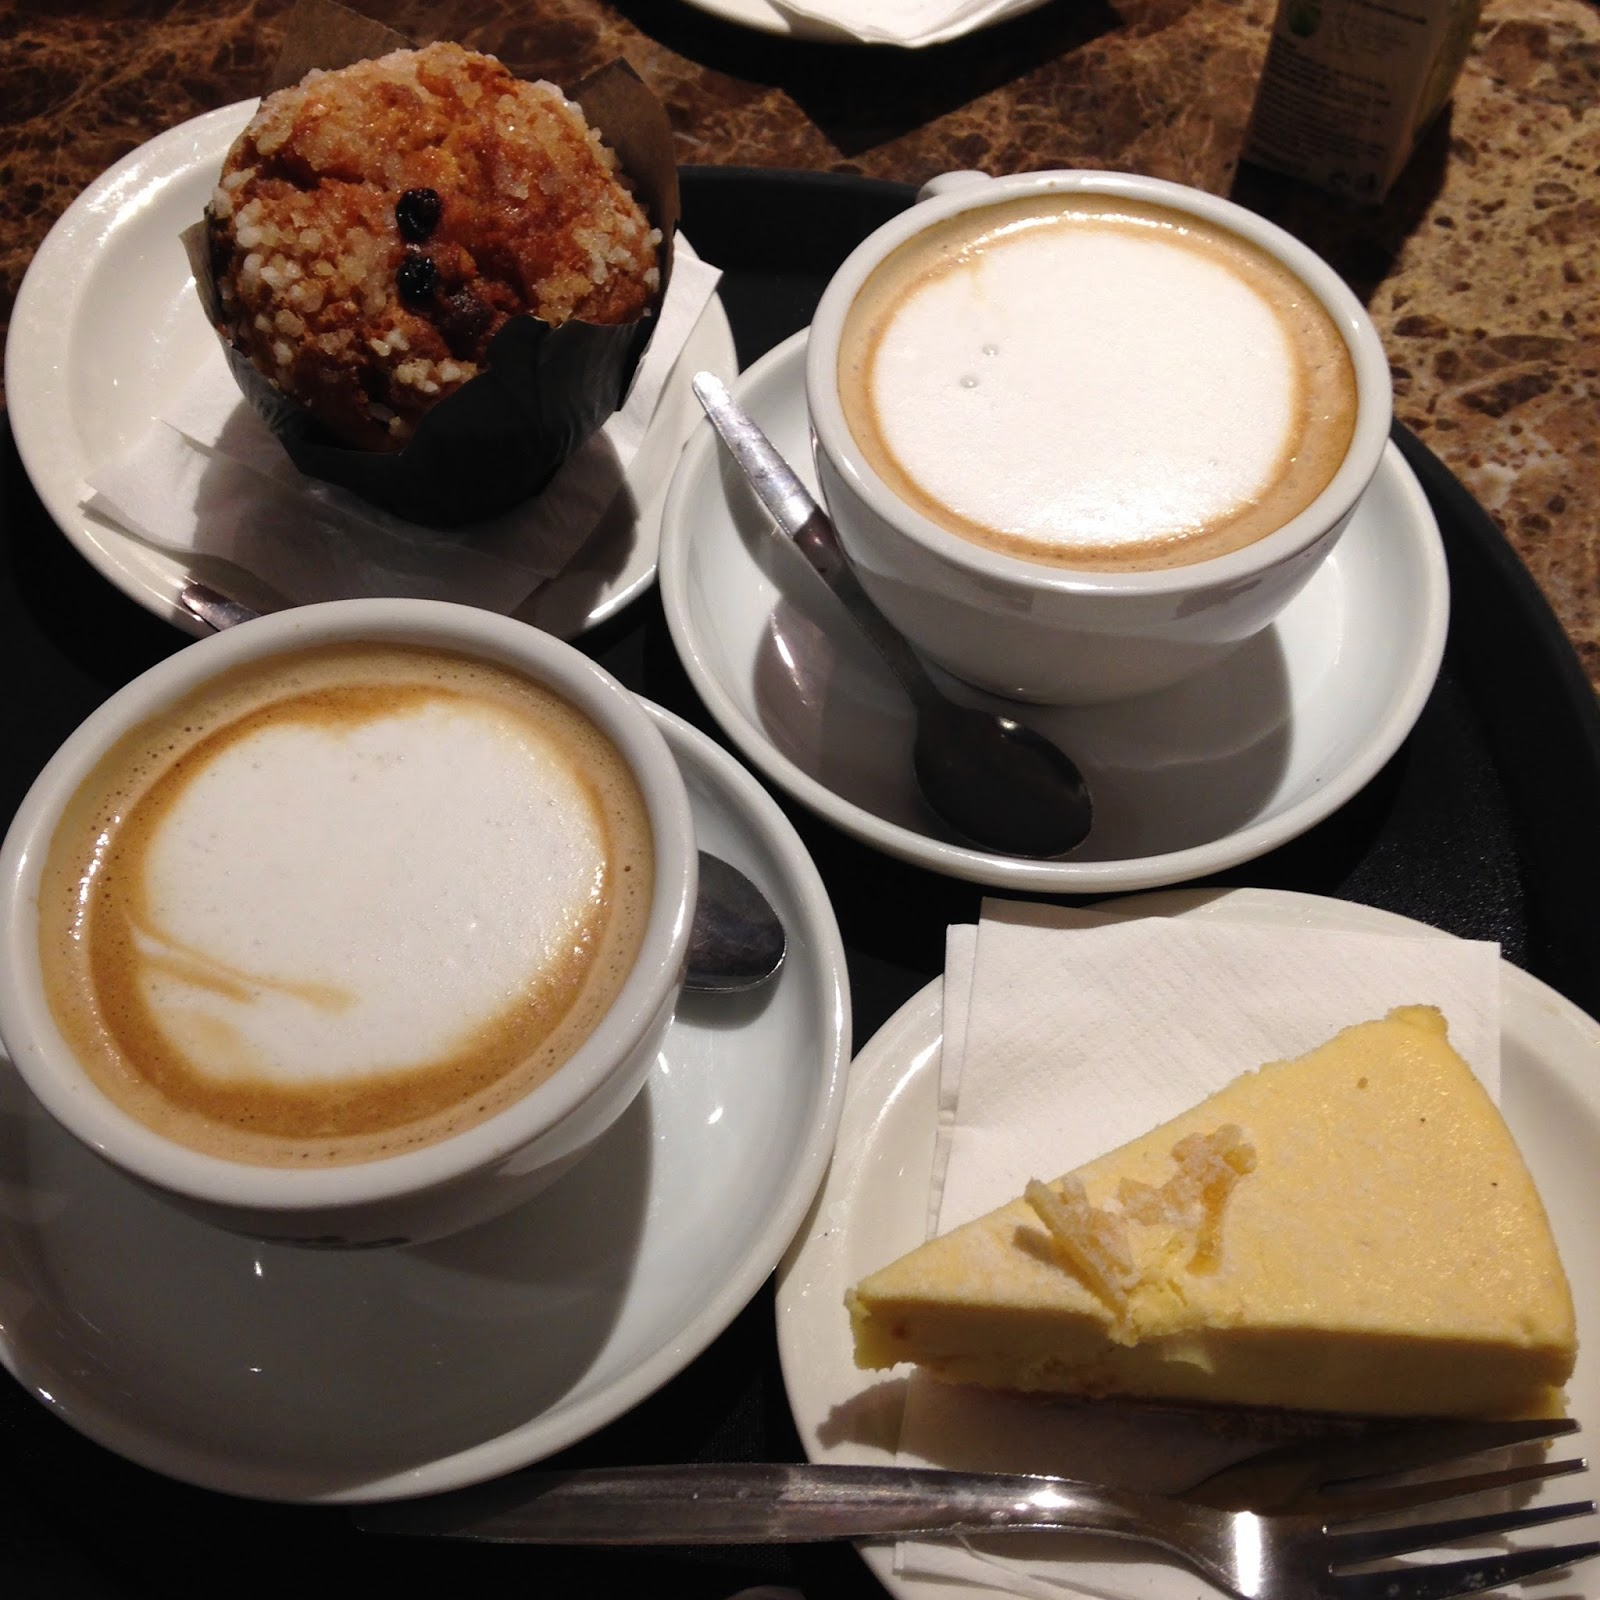 Two coffees and cakes on a tray